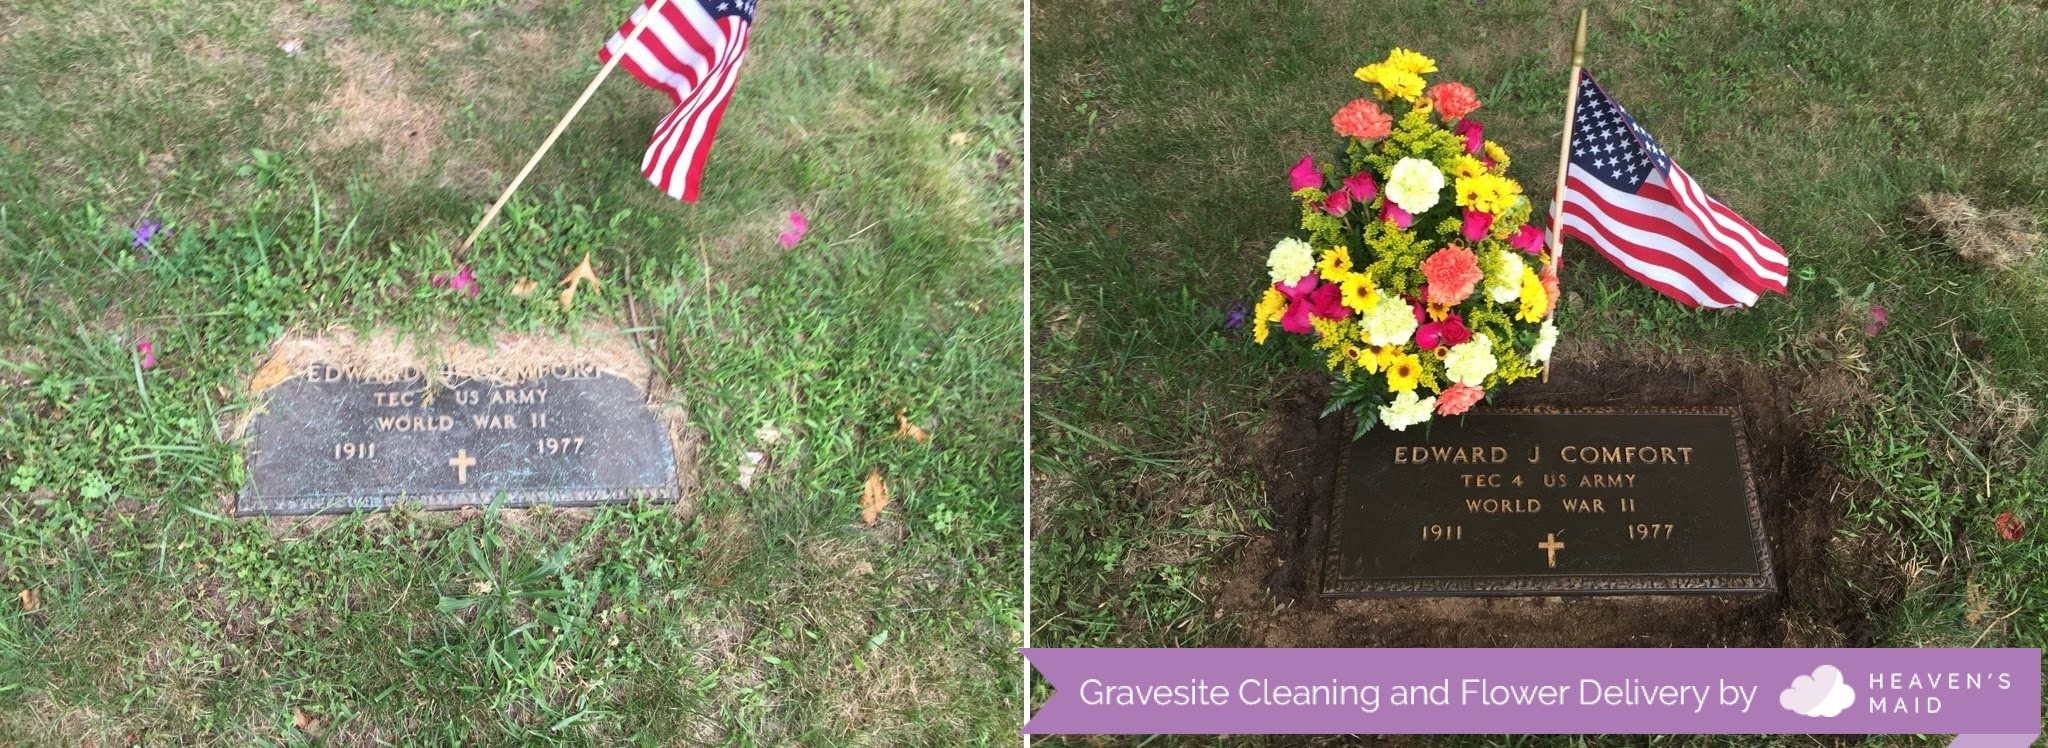 Gravesite Cleaning Flower Delivery Memorial Page Heaven S Maid